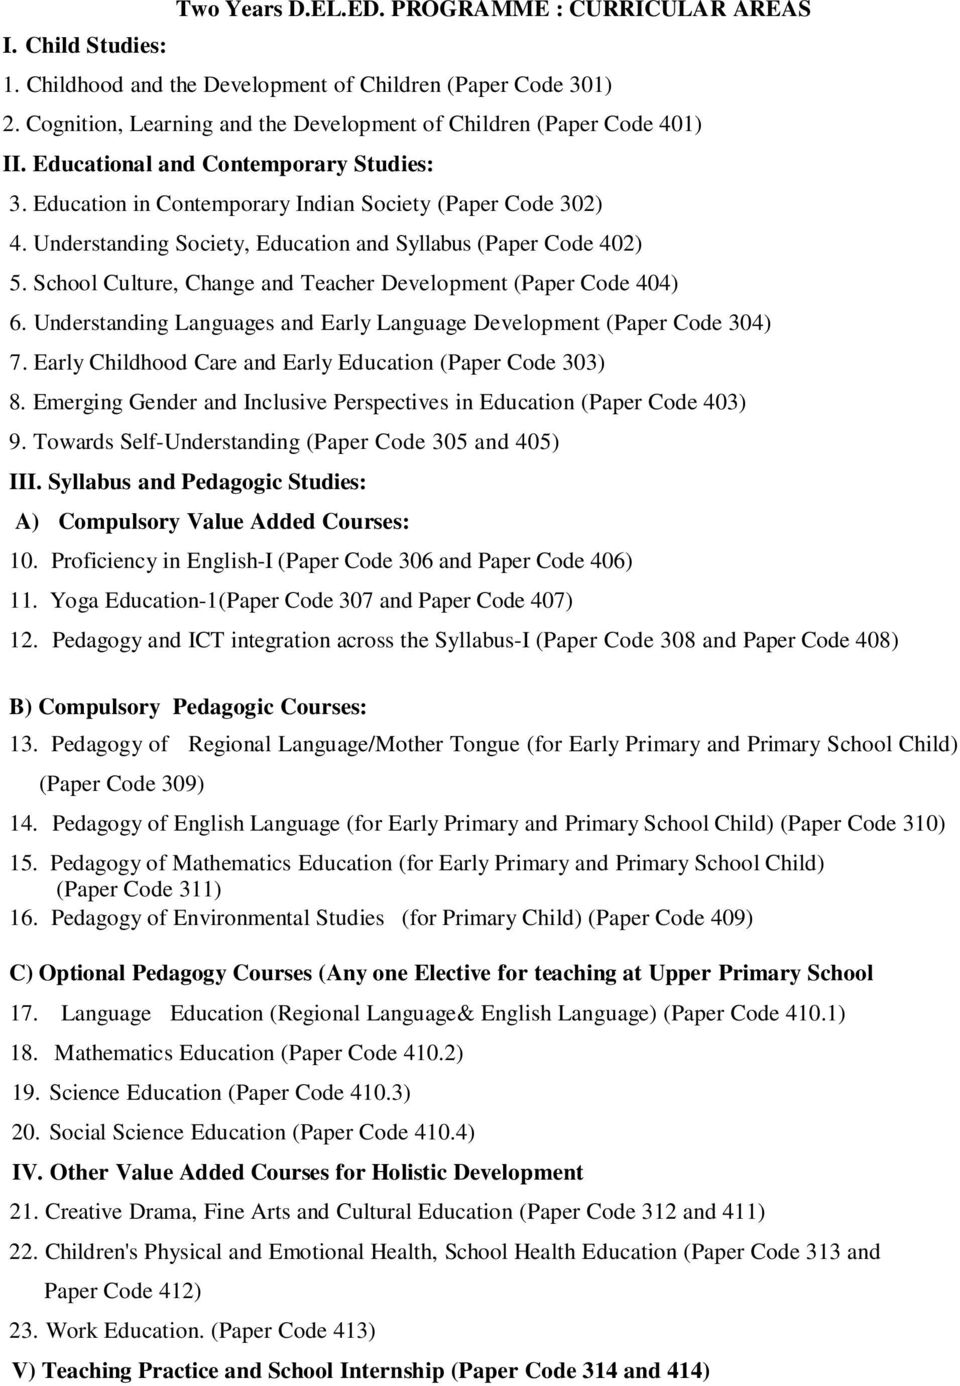 syllabus diploma in elementary education d el ed pdf understanding society education and syllabus paper code 402 5 school culture